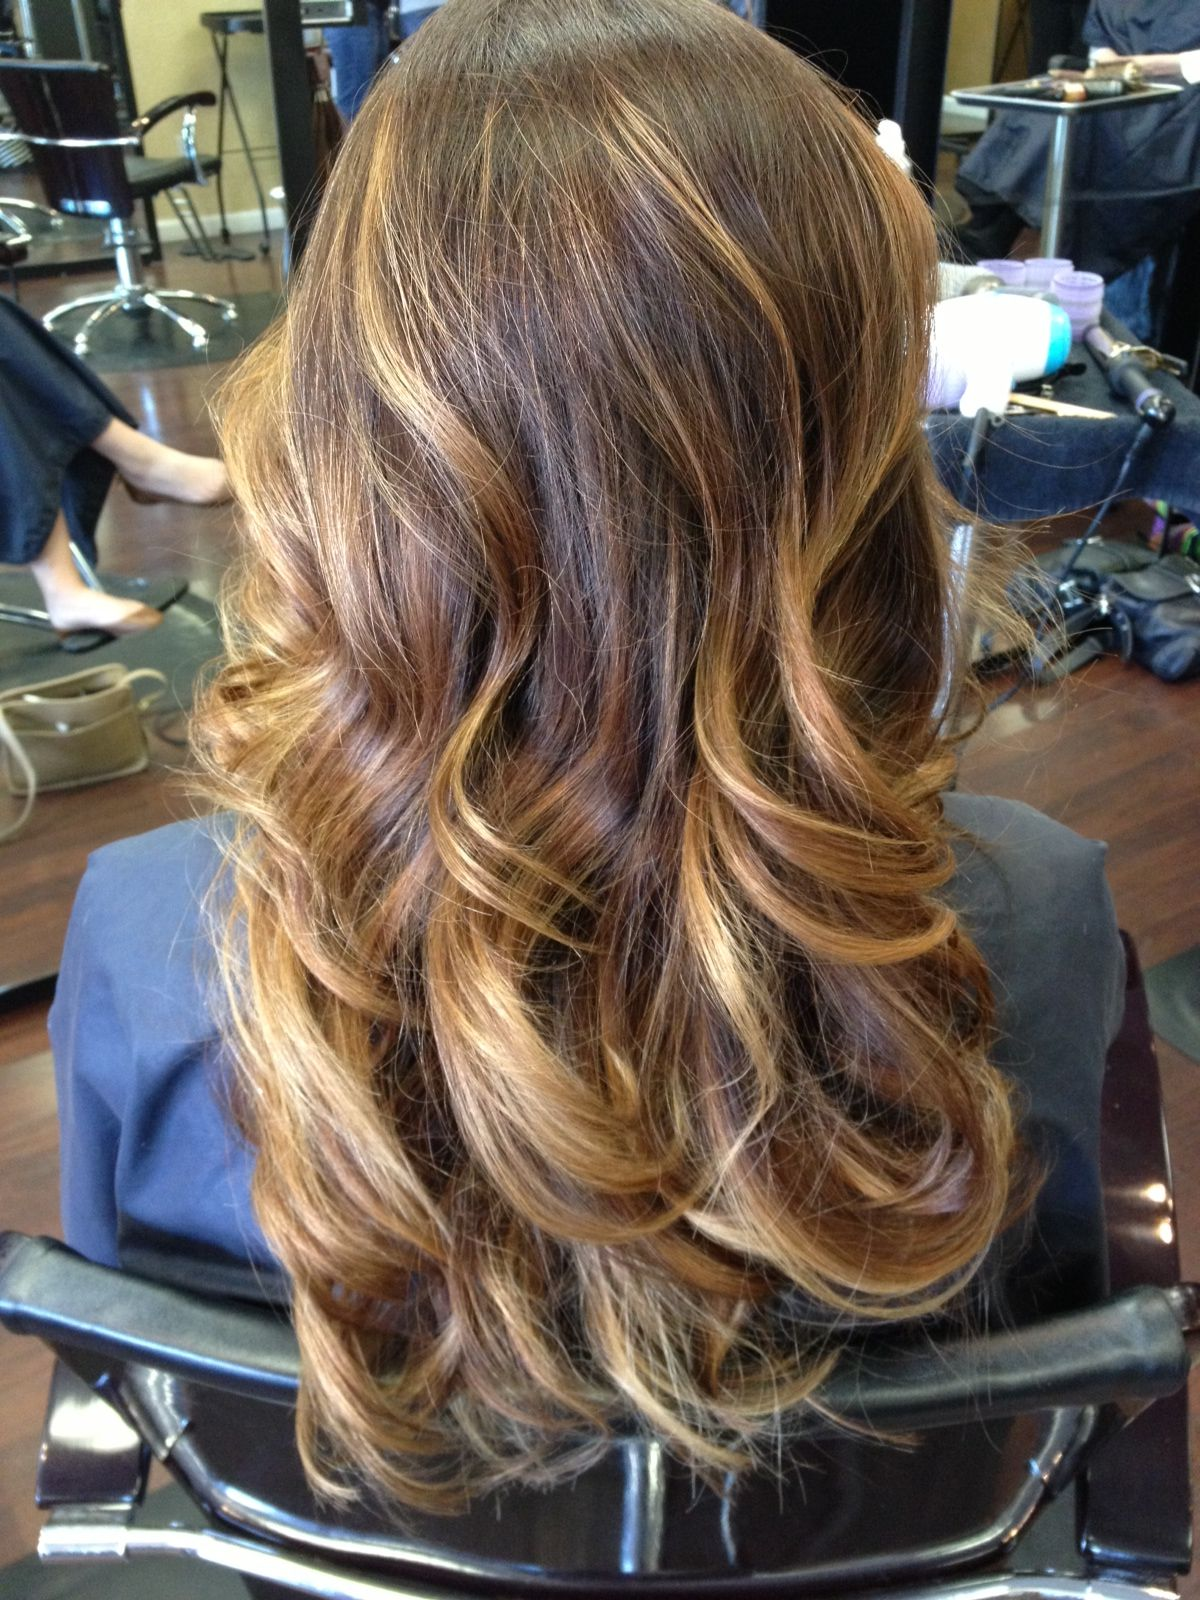 Brown ombre with blonde highlights my exact natural hair color